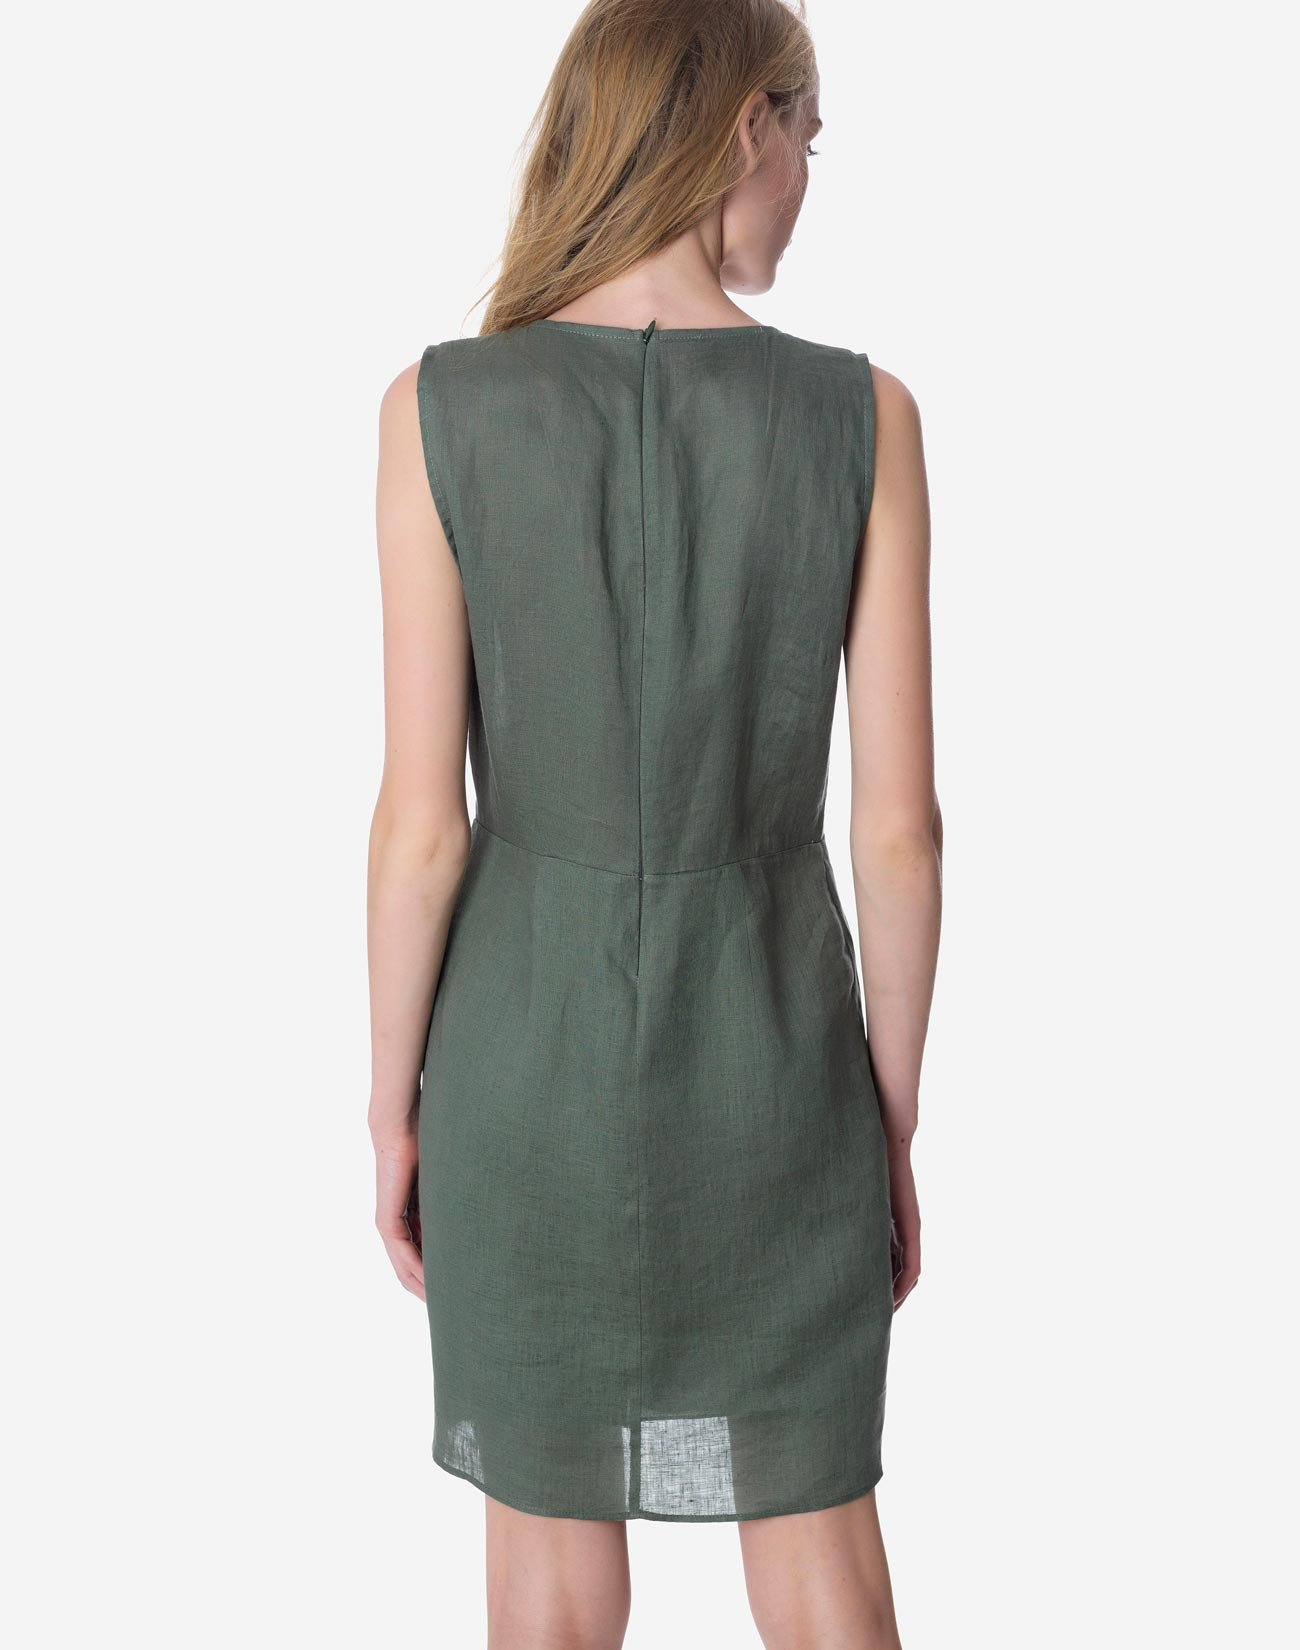 Linen dress with knot detail